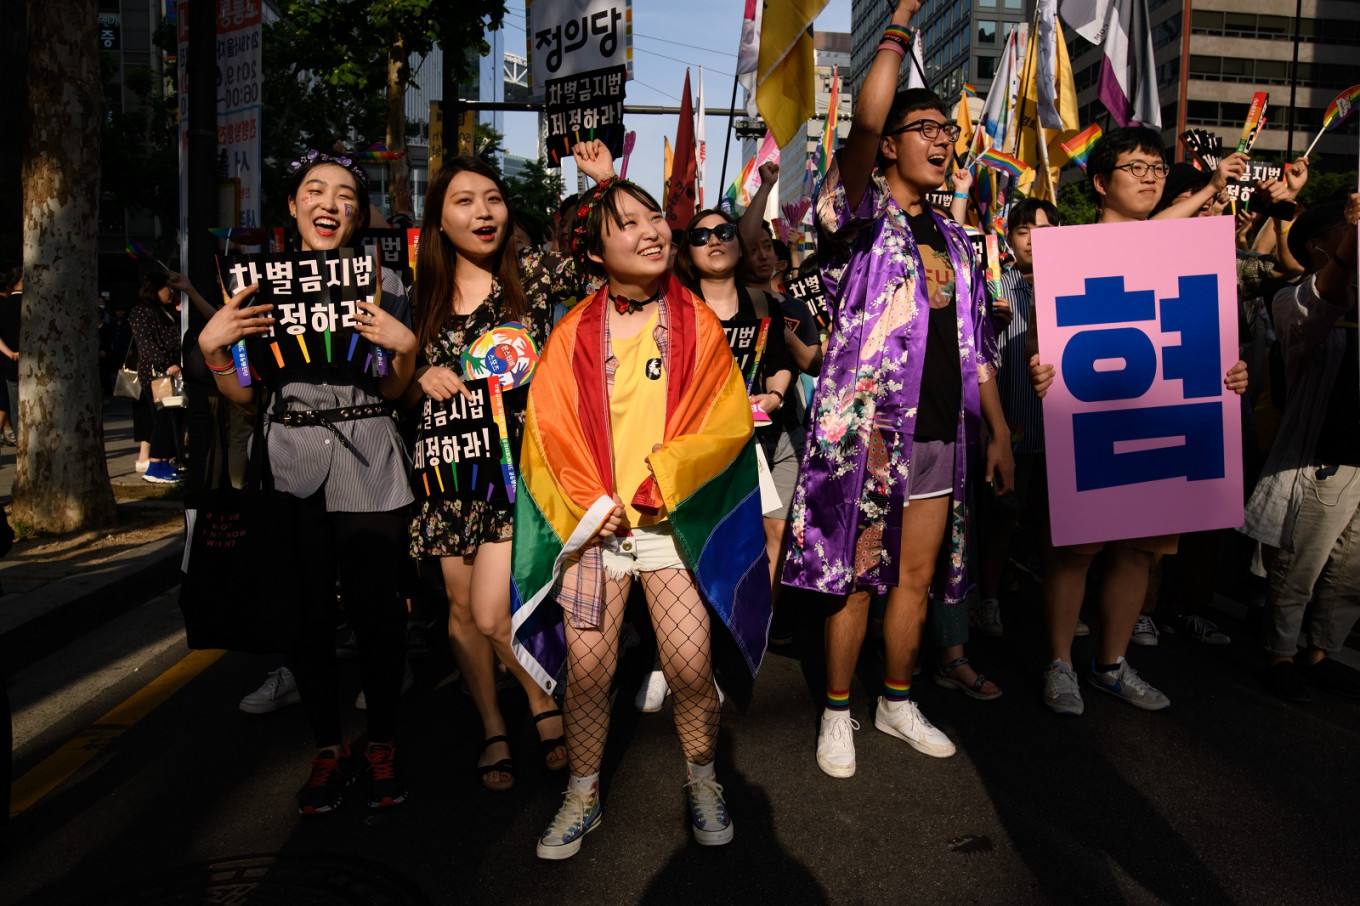 LGBT support growing in K-pop - Entertainment - The Jakarta Post